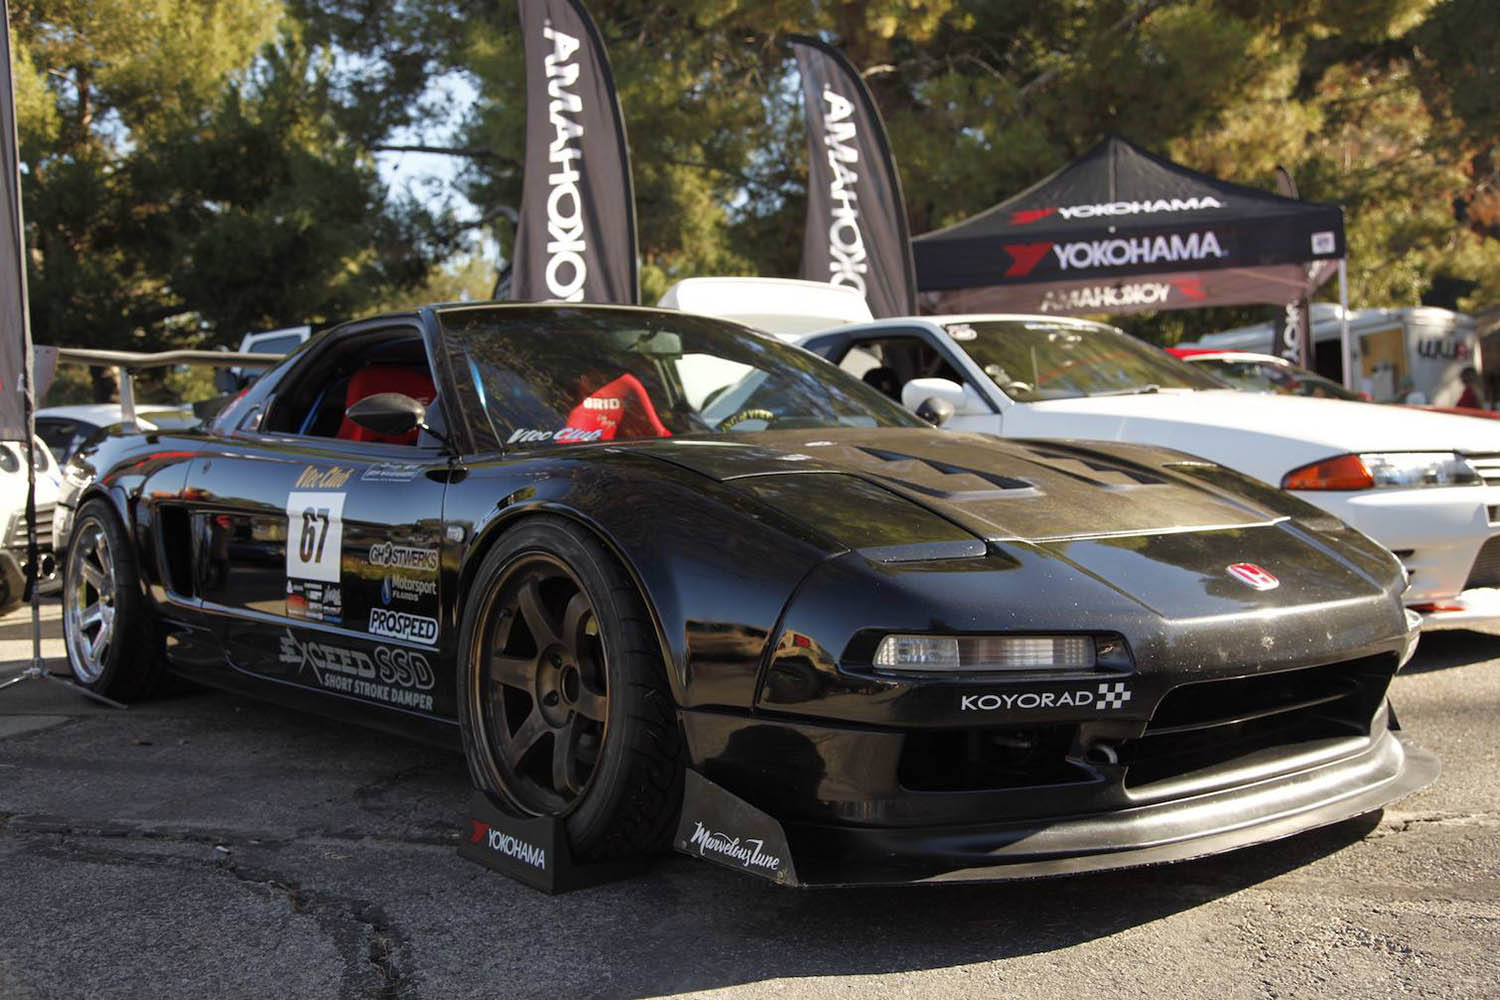 Acura NSX with a turbo K20 inline-four